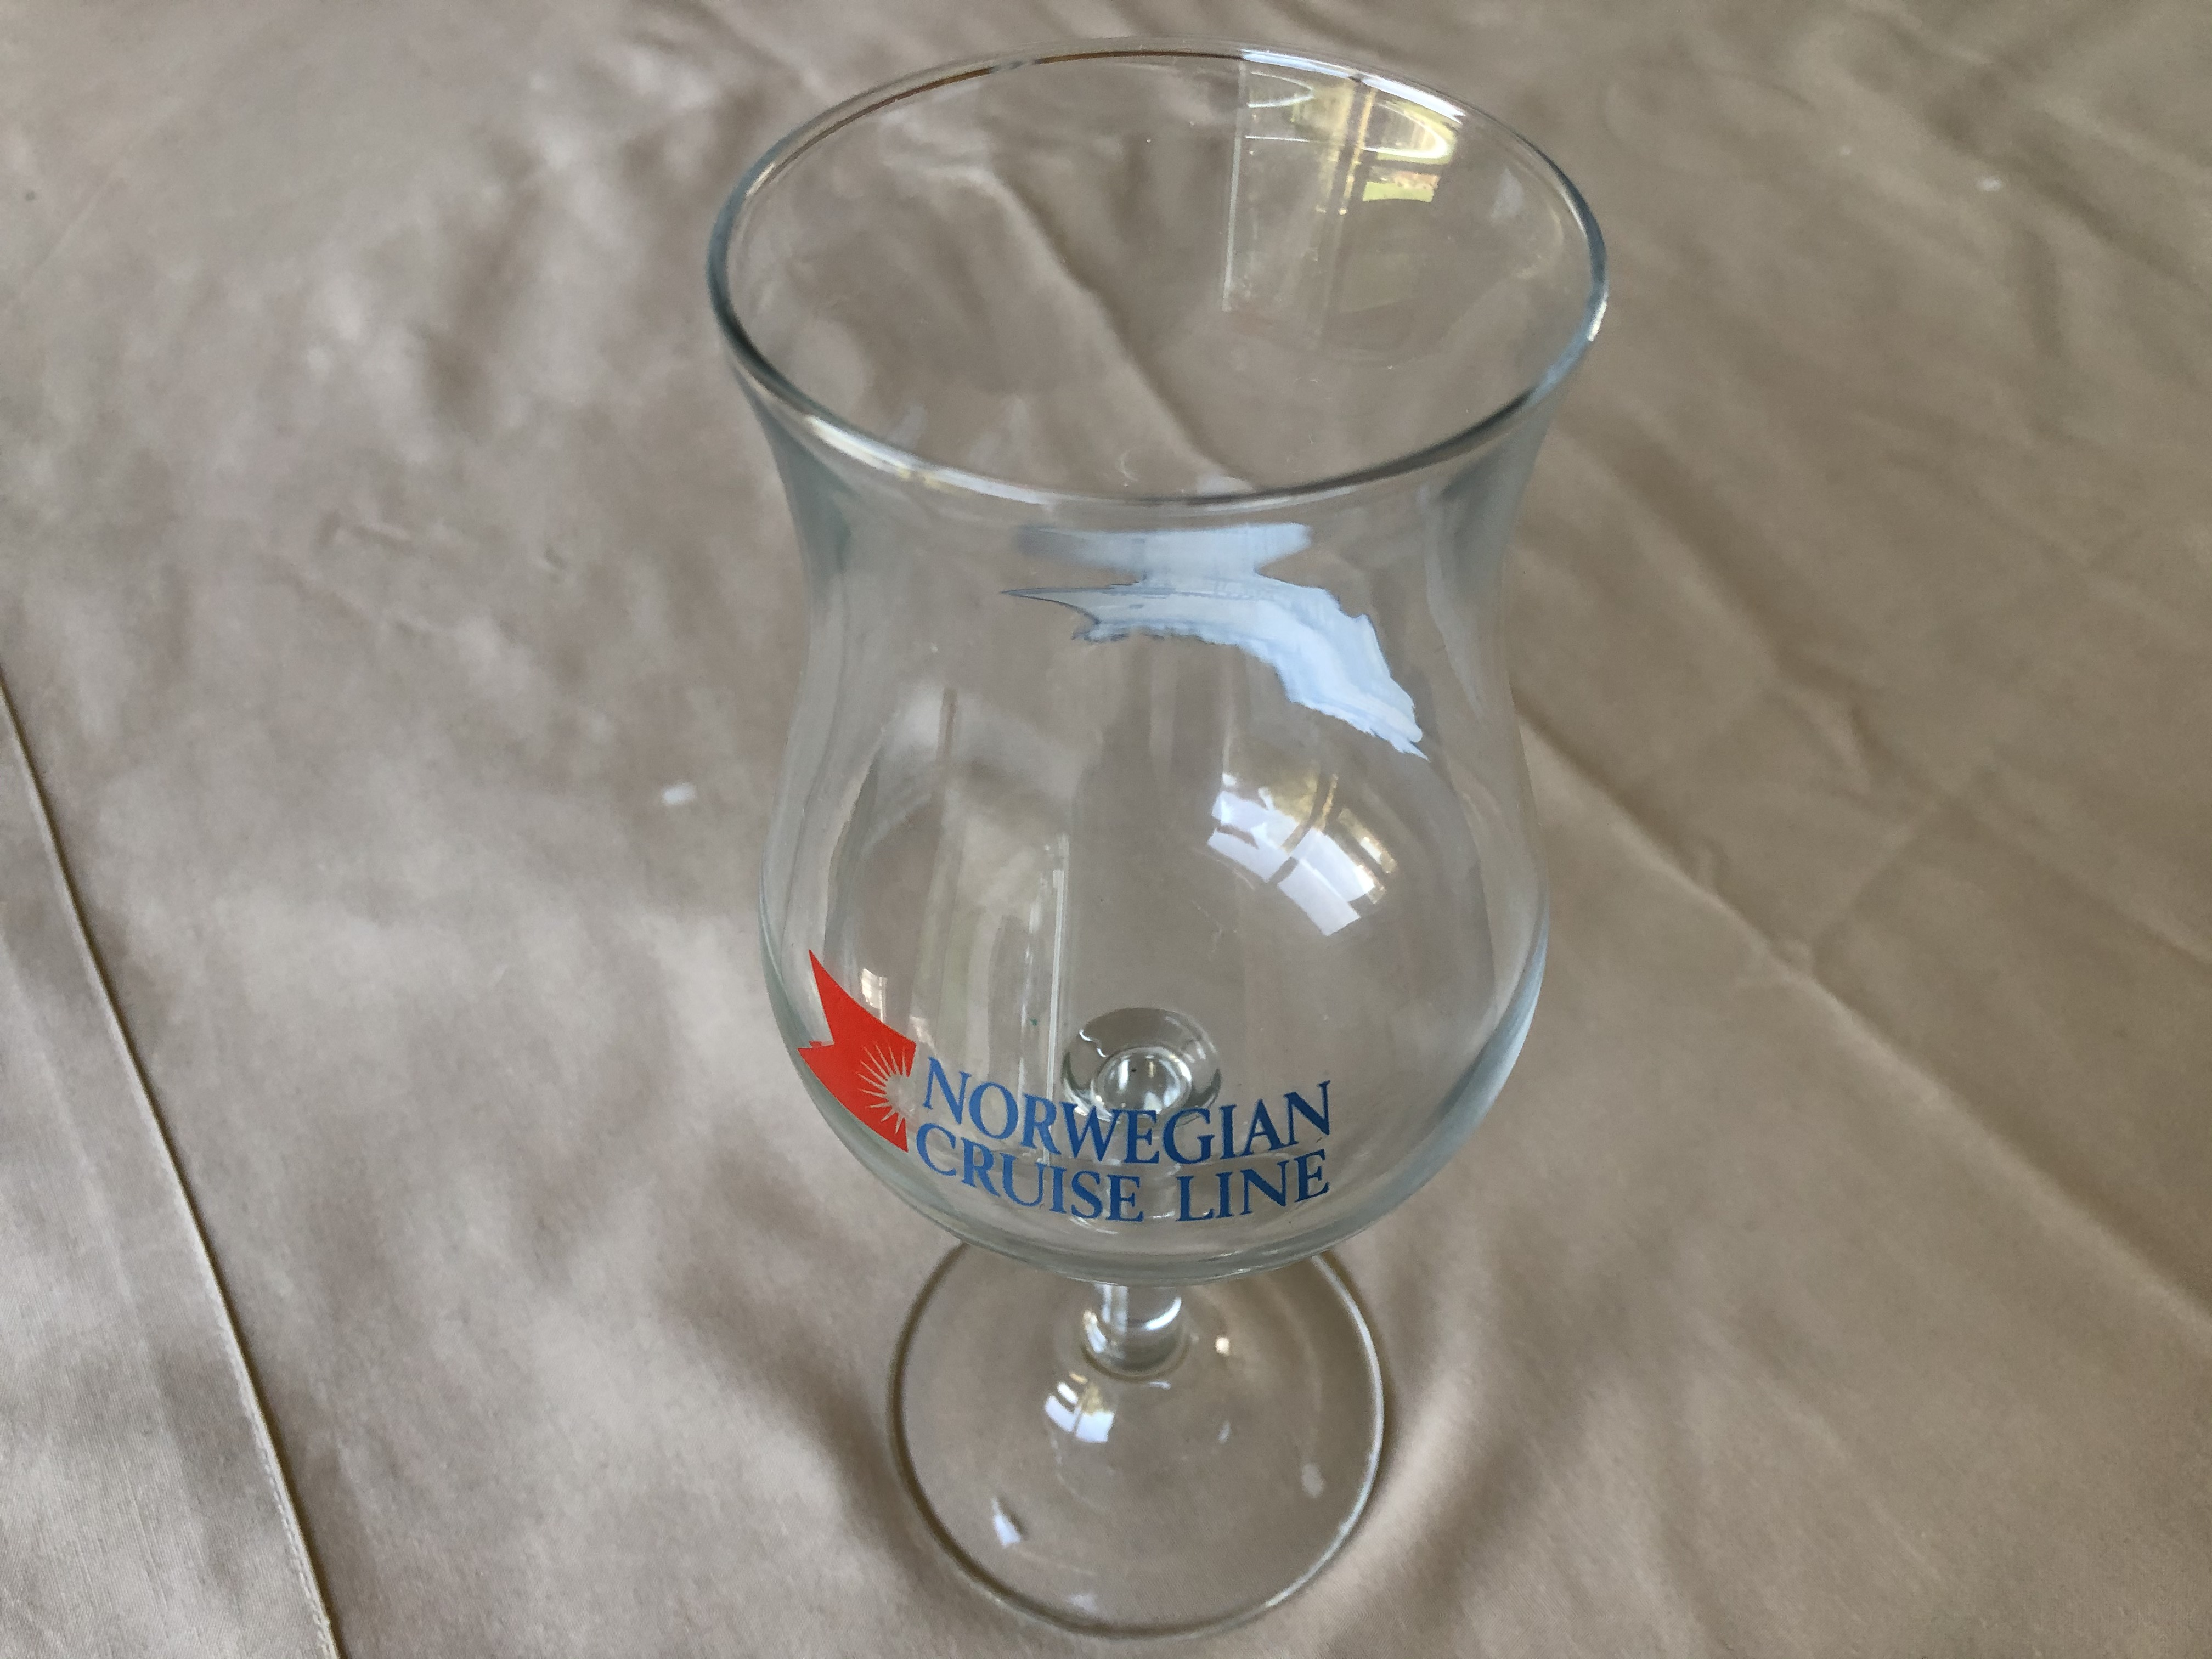 ONBOARD BAR GLASS FROM THE VESSEL 'SEAWARD' OF THE NORWEGIAN CRUISE